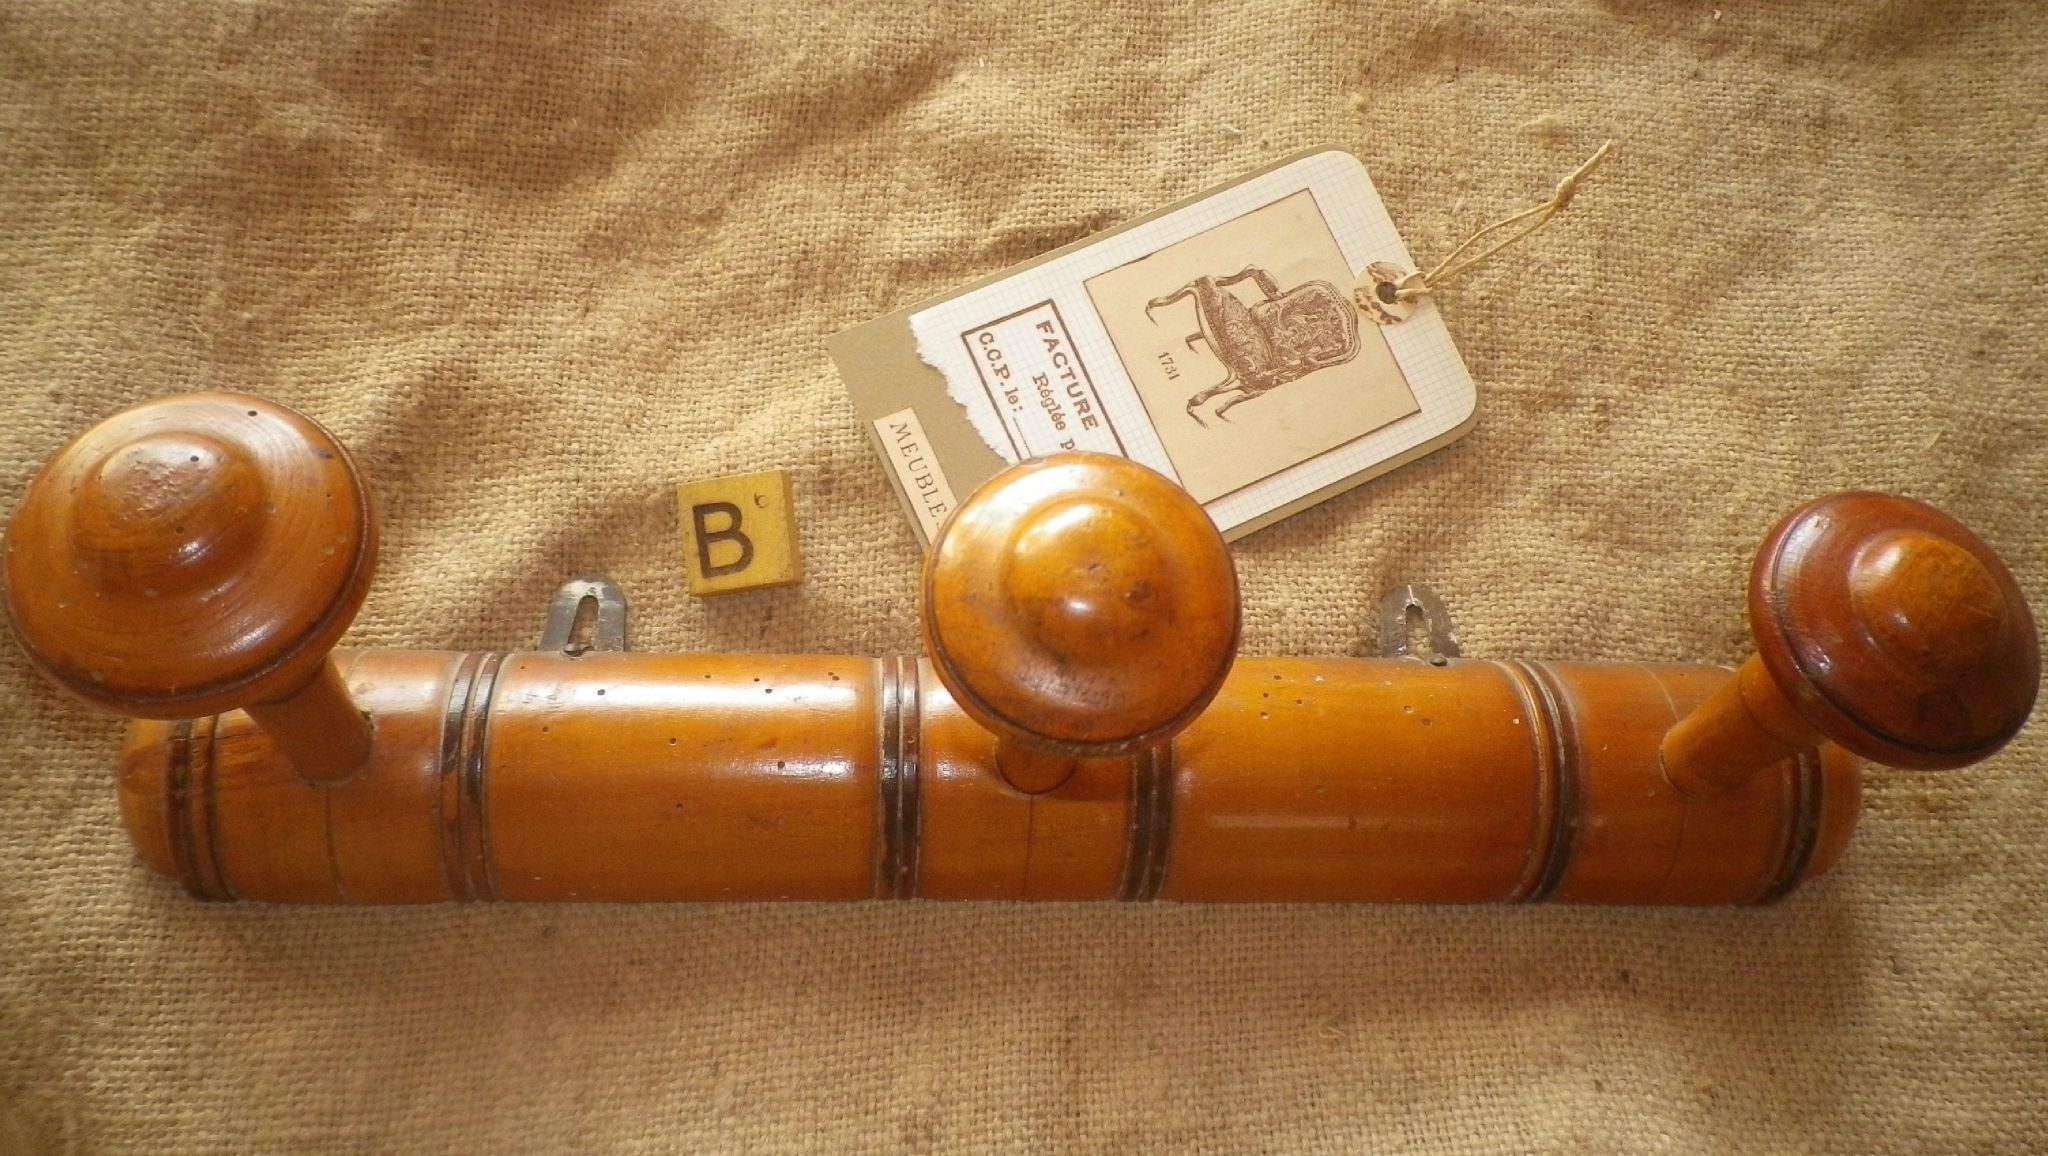 Ancien porte manteaux en bois etiquette home made scrap art d co - Porte manteau bois ancien ...